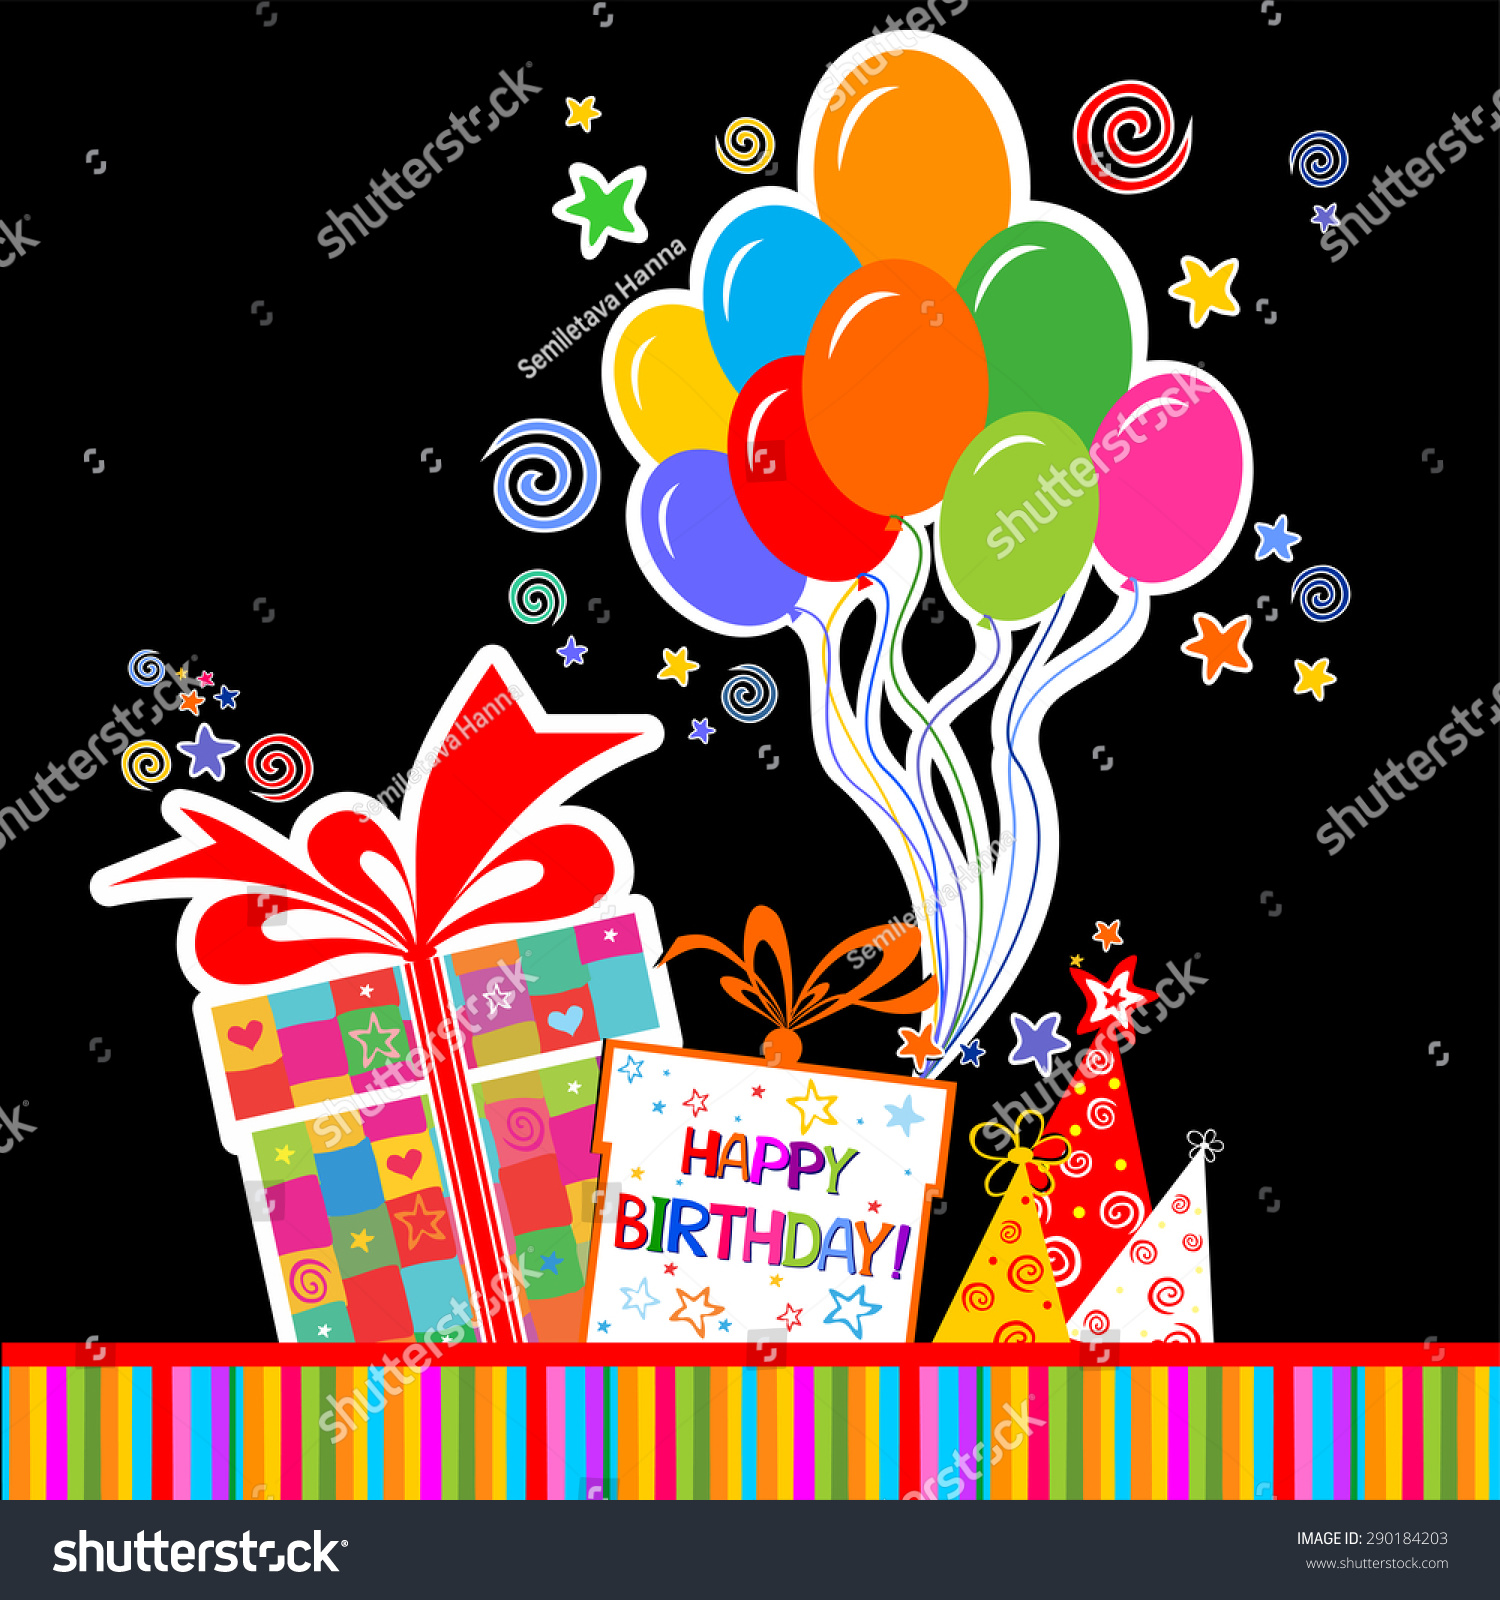 Happy Birthday Card Celebration Black Background With Gift Boxes Balloon Colored Carnival